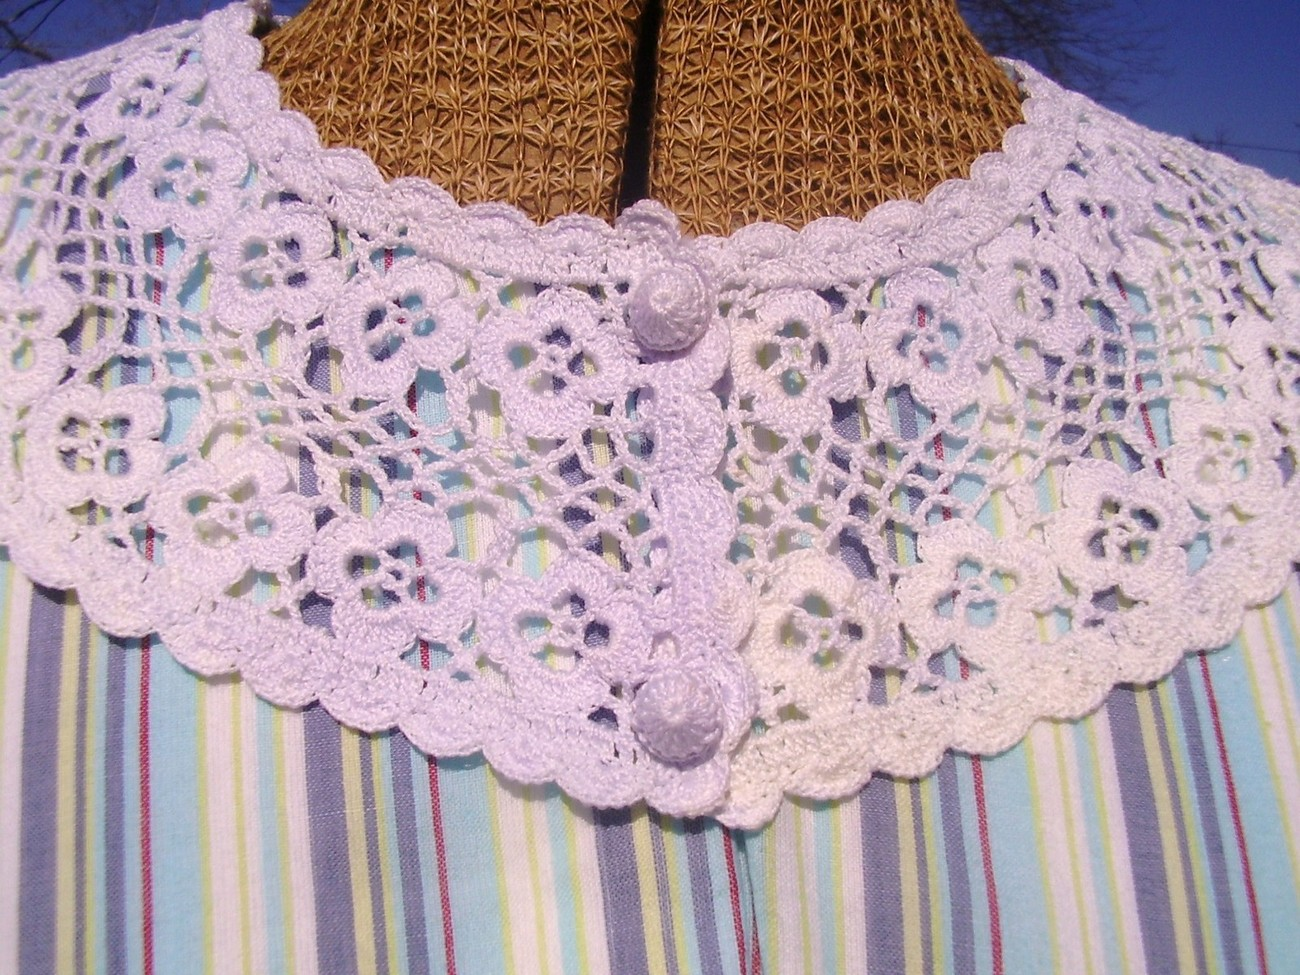 Victorian Edwardian Dress Collar Crochet HandMade Fancy USA  Vintage